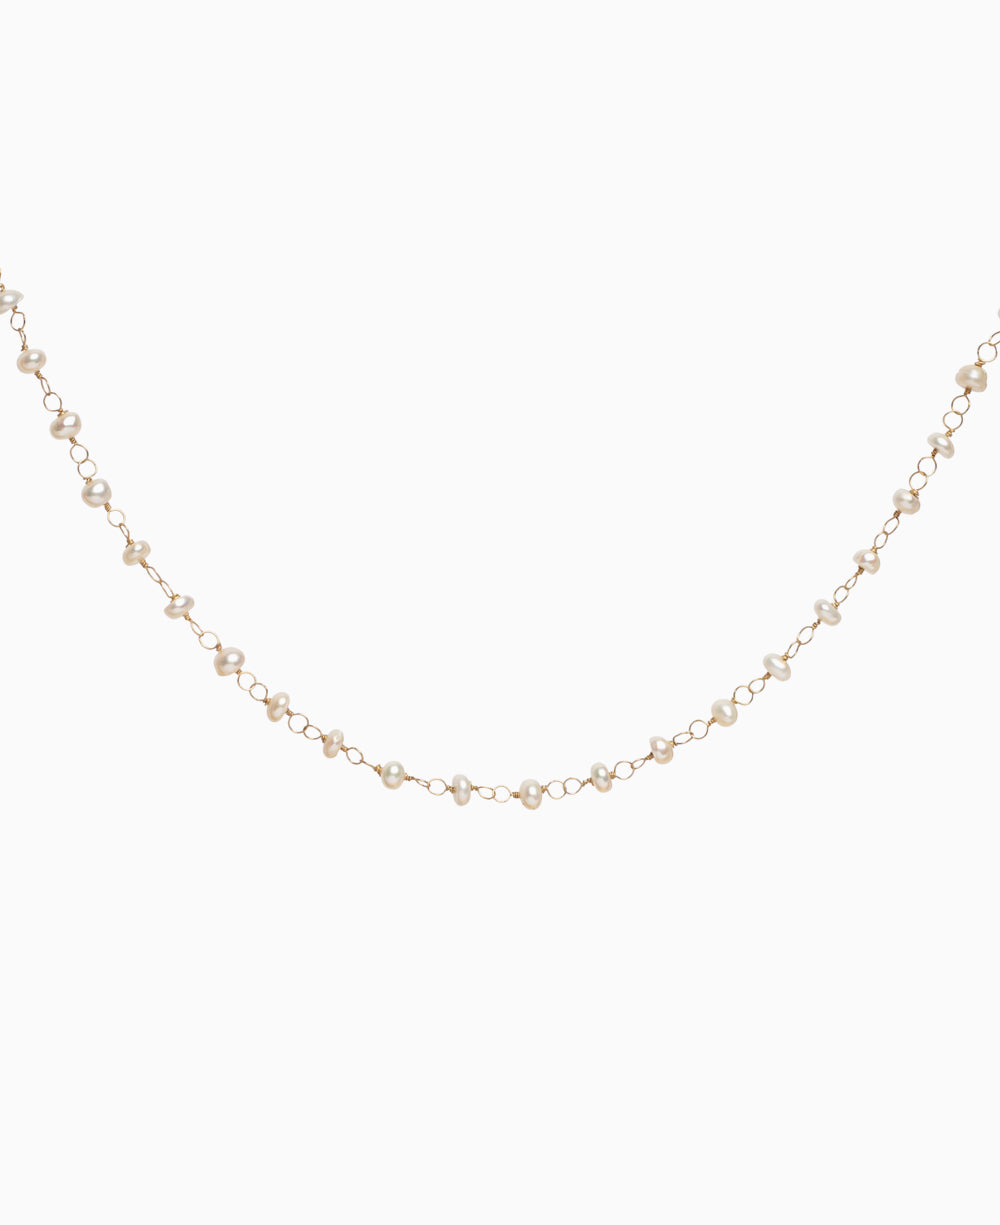 Mila Pearls Necklace